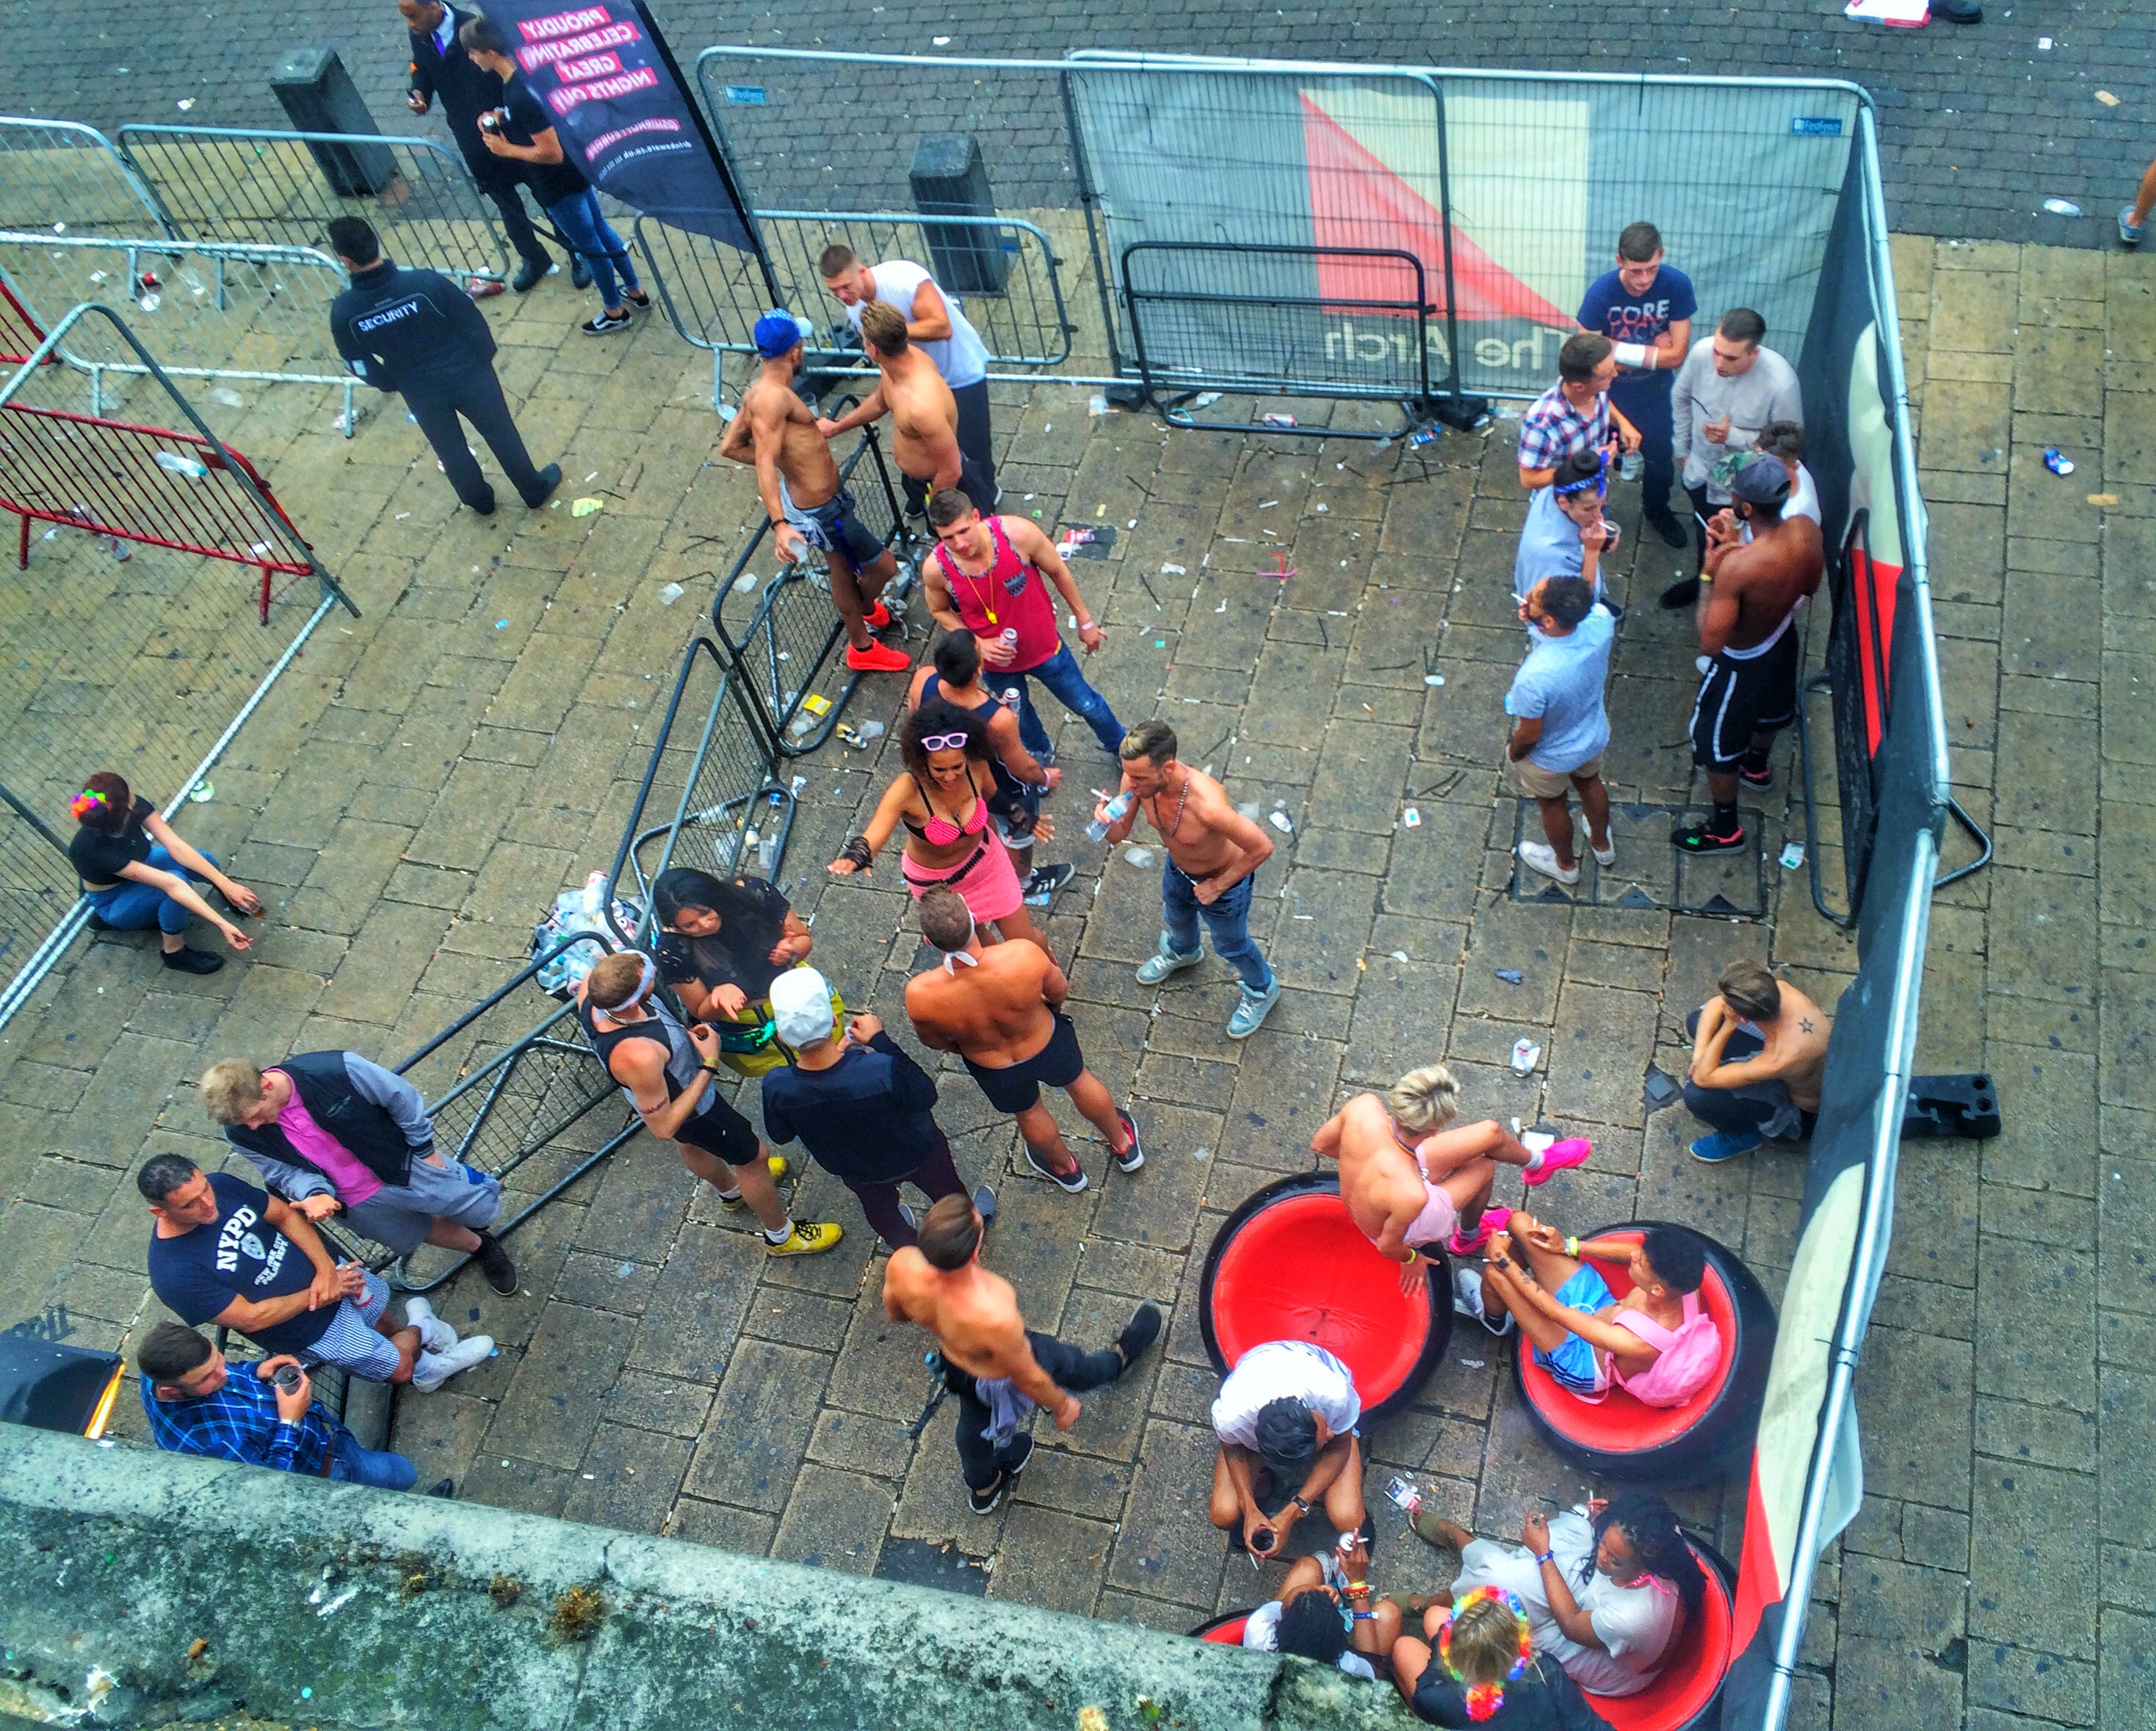 BRIGHTON PRIDE 2016 AFTERMATH - outside the club